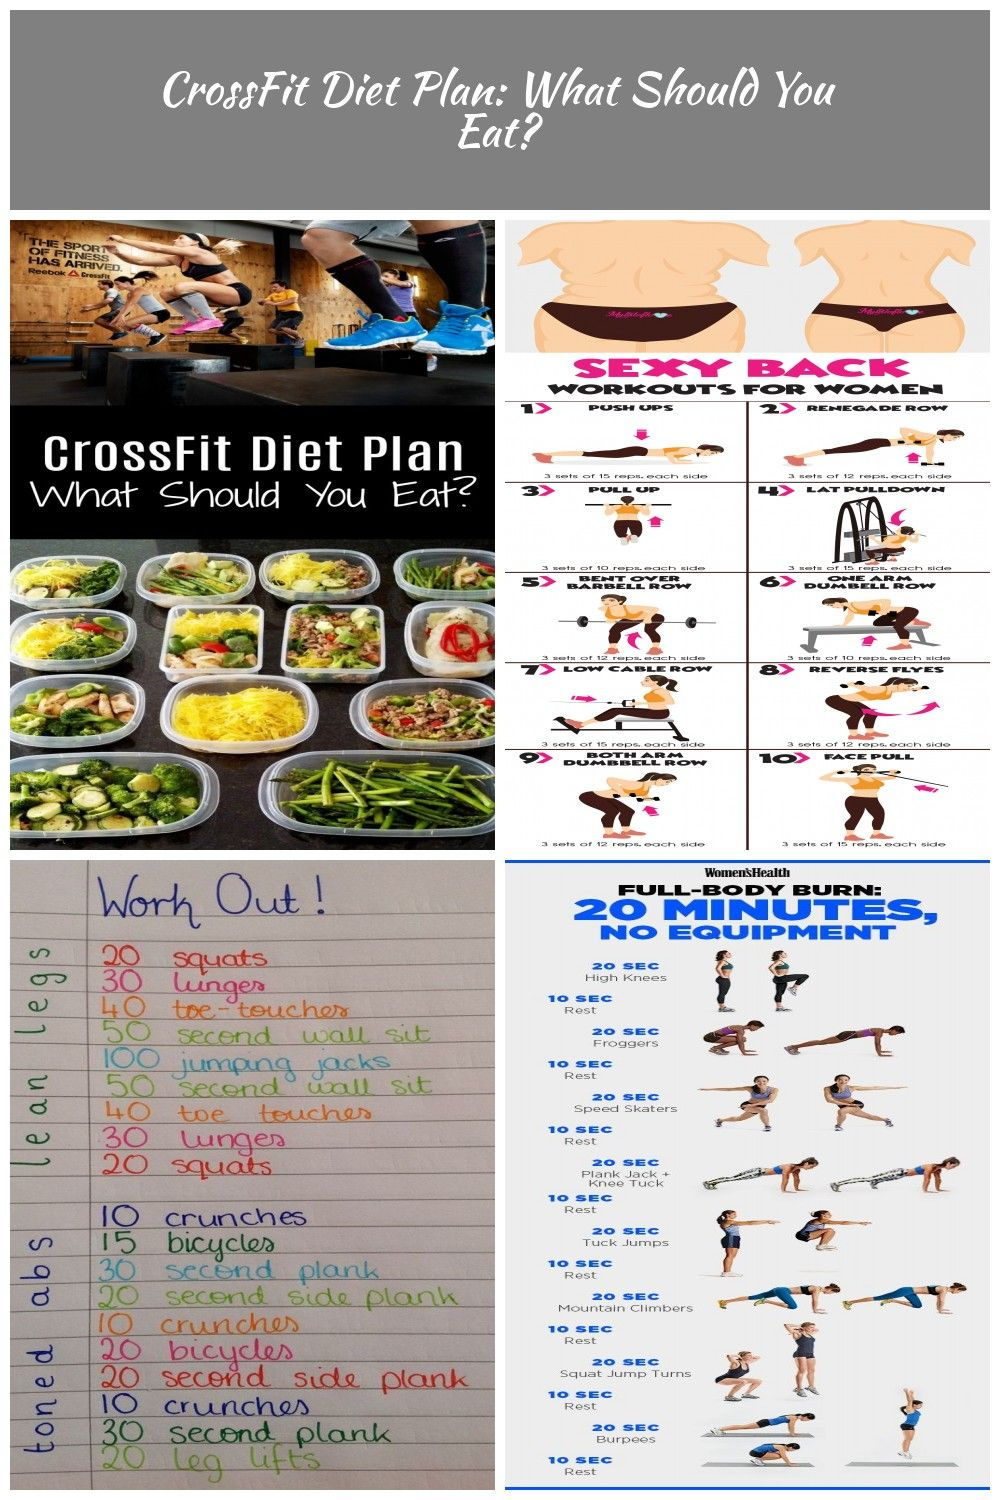 Crossfit Diet Plan What Should You Eat Fitness Diet Plan Crossfit Diet Plan What Should You Eat Crossfit Diet Plan Diet Plan Fitness Diet